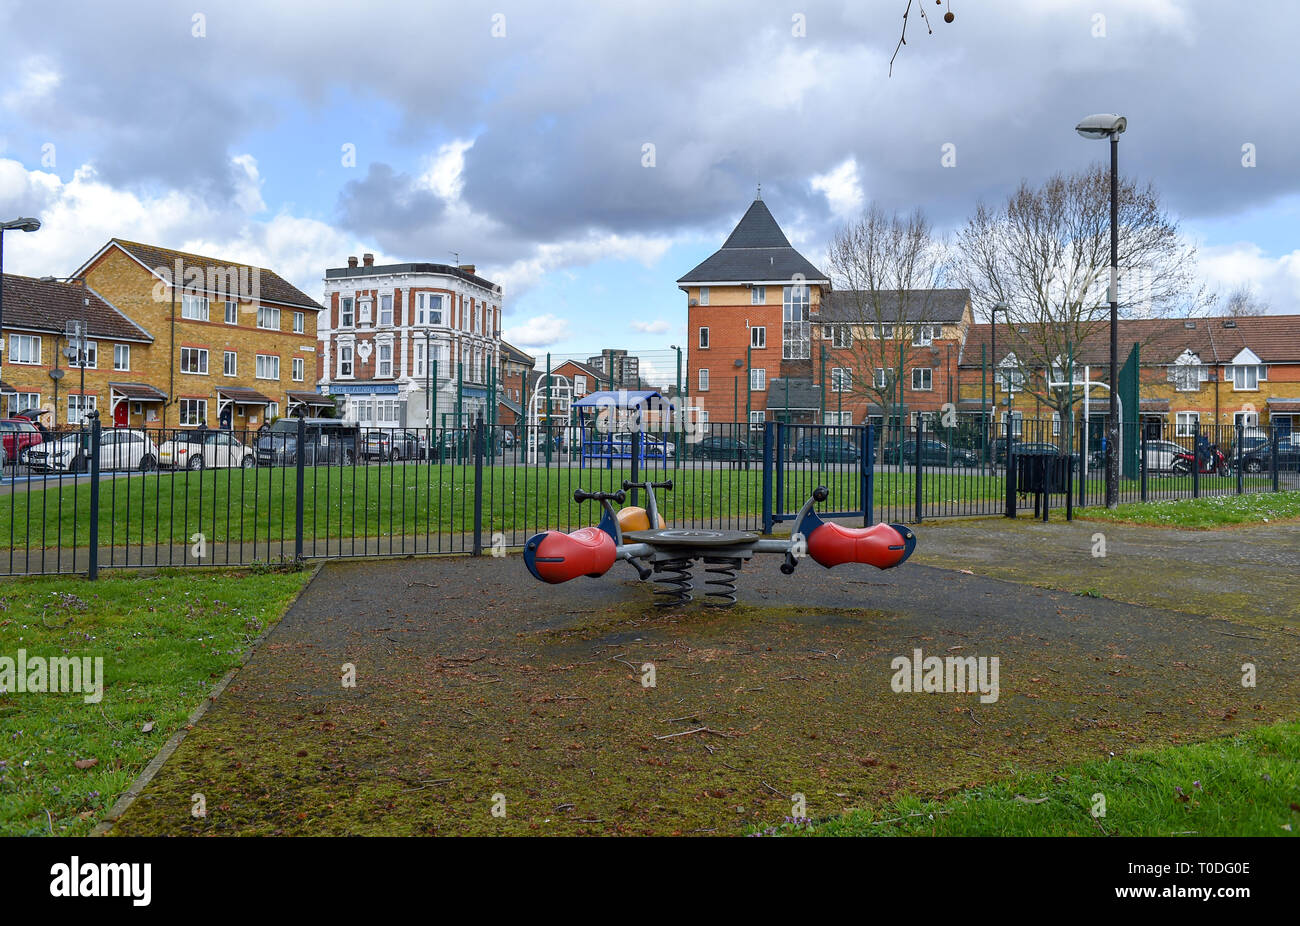 Bermondsey Borough of Southwark London UK - Estate playground with The Bramcote Arms in background which has been converted into flats Stock Photo